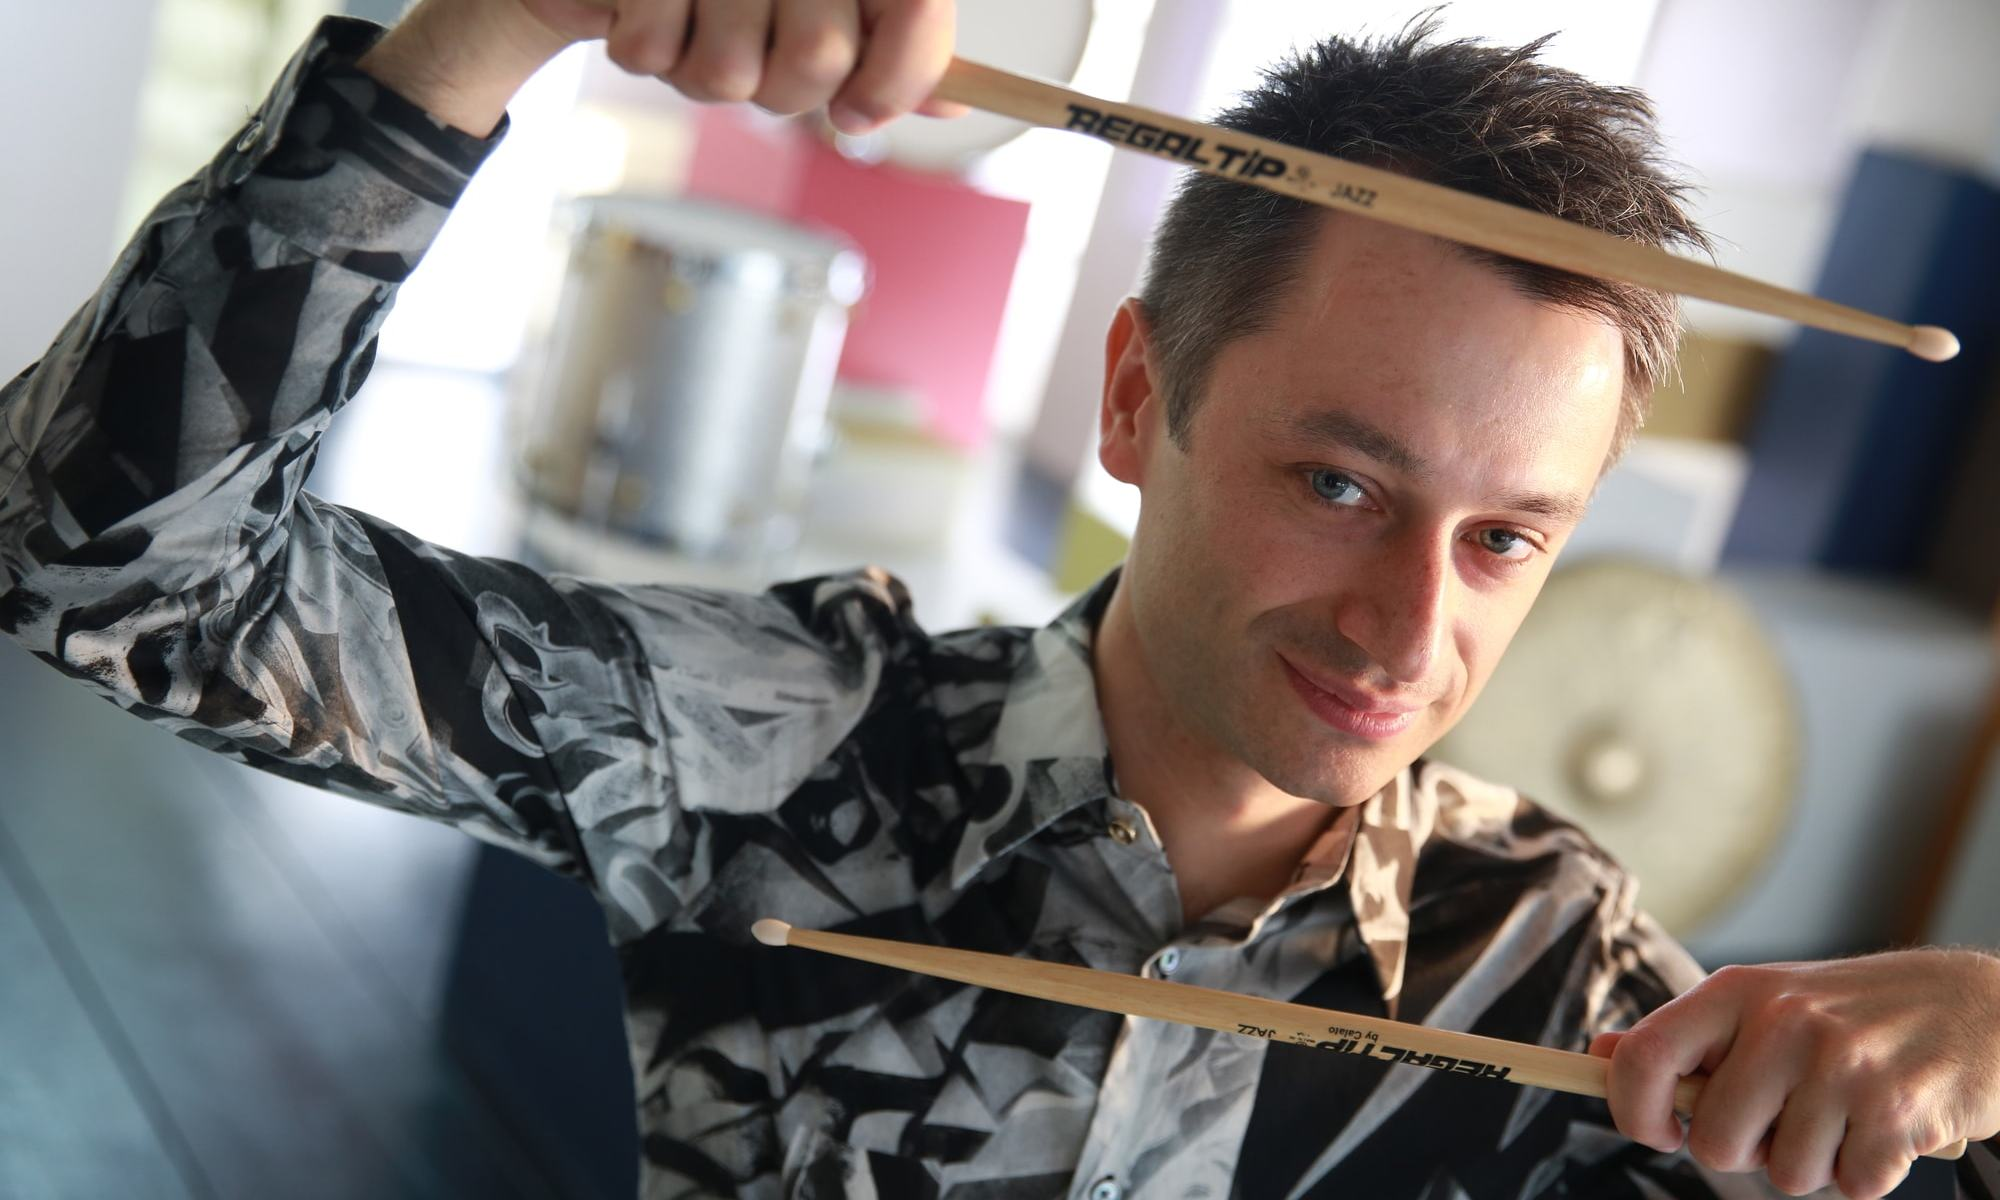 Dennis Frehse holding his regaltip drum sticks in a funny way in front of his face to create a frame for his face.